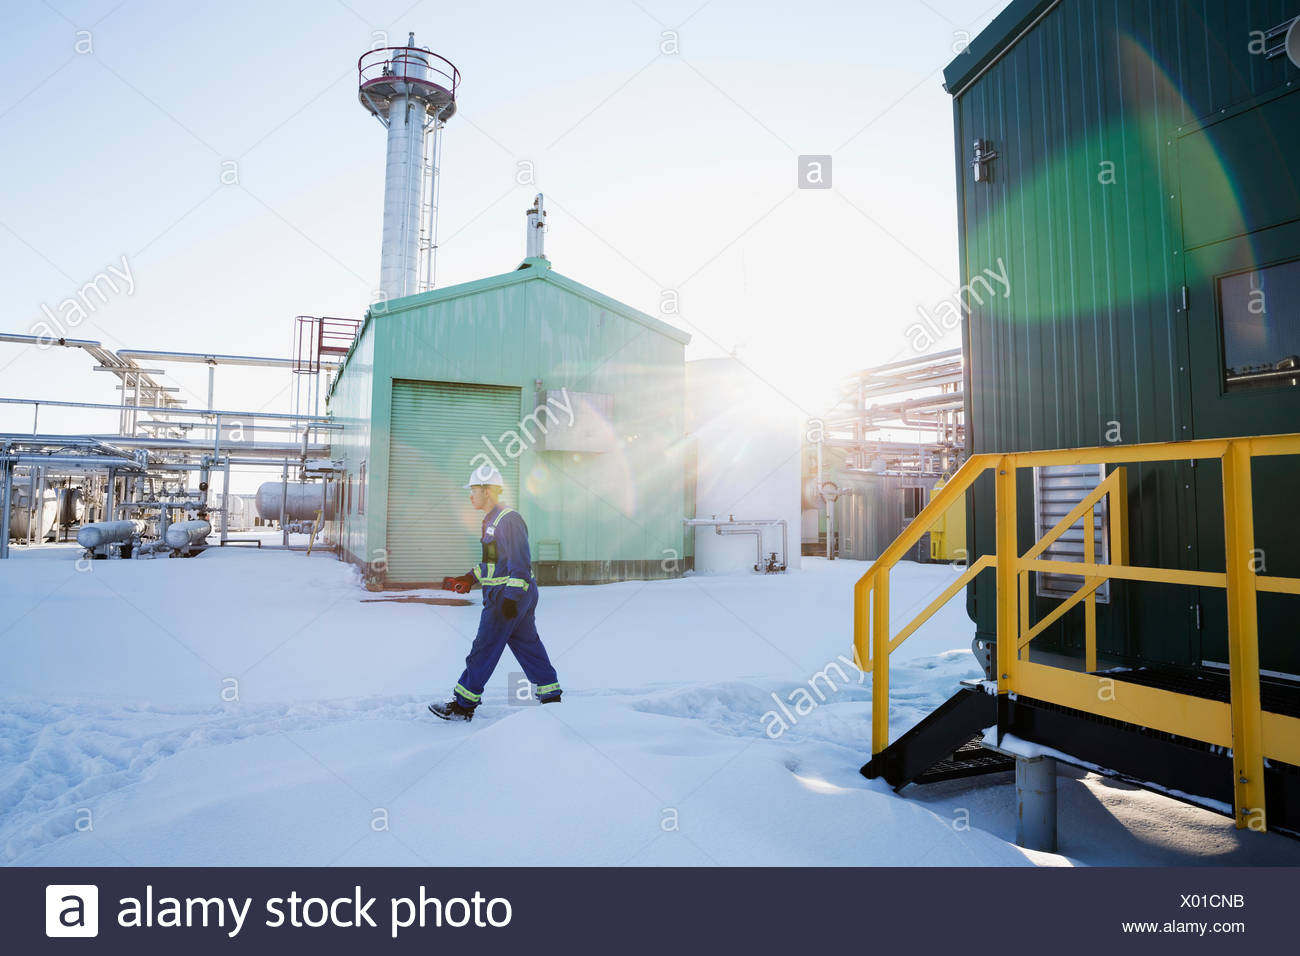 Male worker walking in snow at gas plant - Stock Image